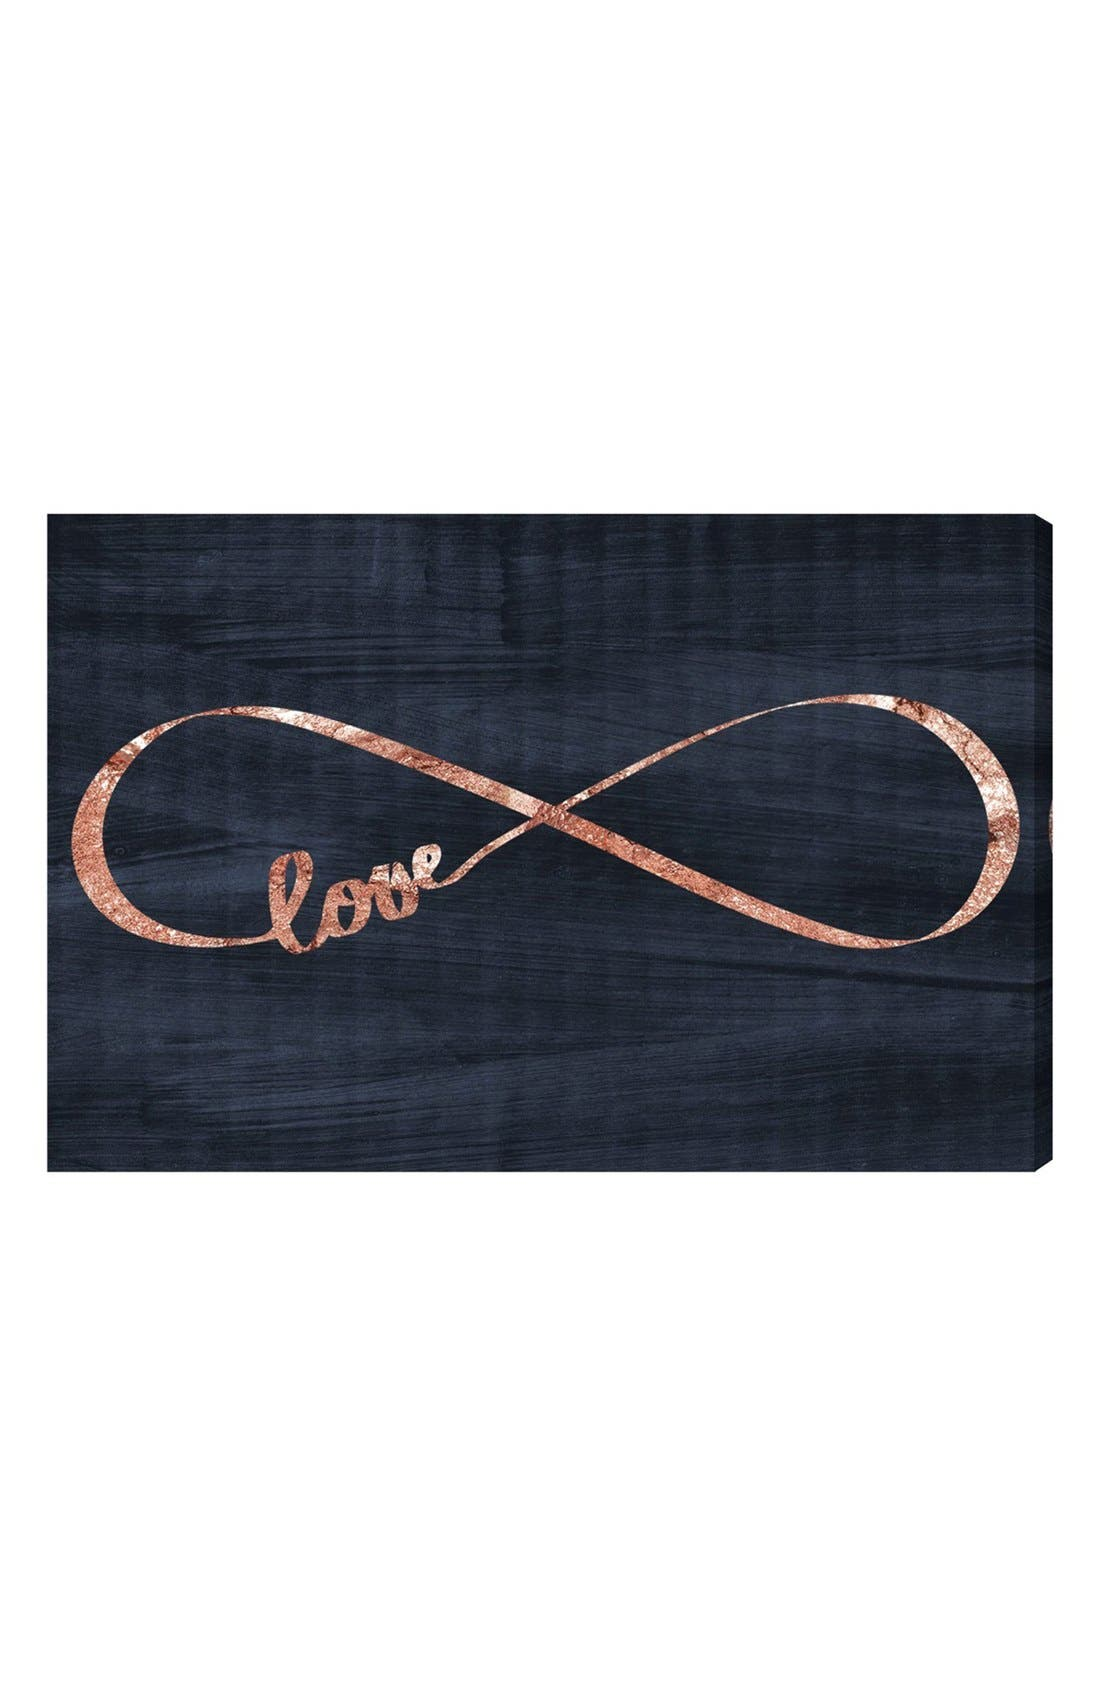 'Infinite Love' Canvas Wall Art,                         Main,                         color,